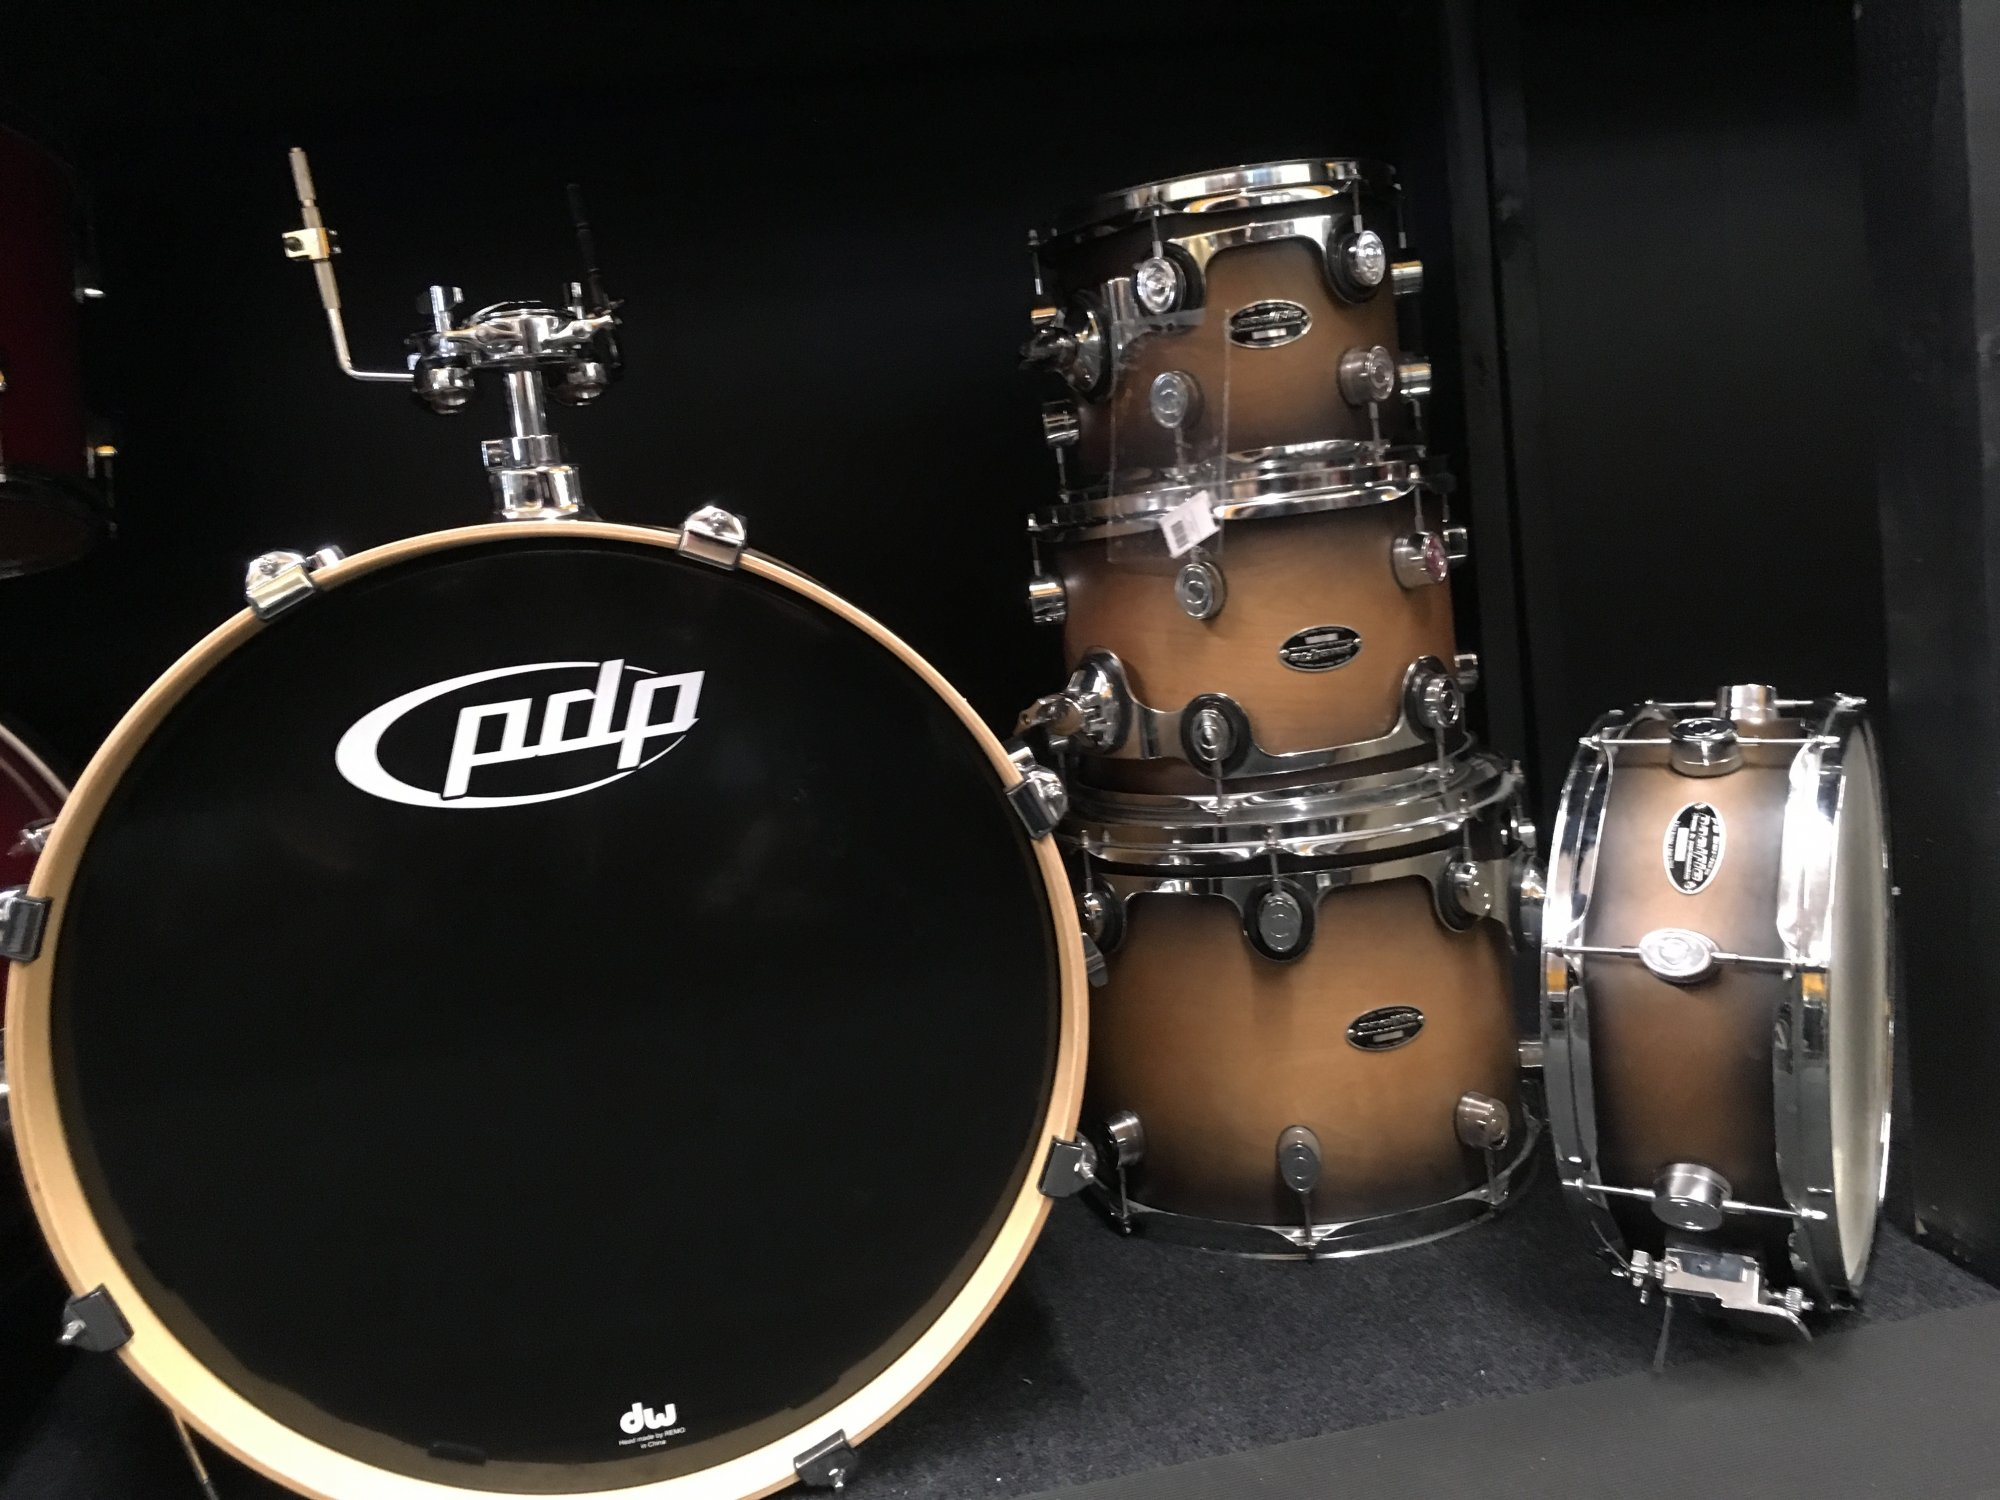 USED PDP FS Maple 5pc Shell Kit